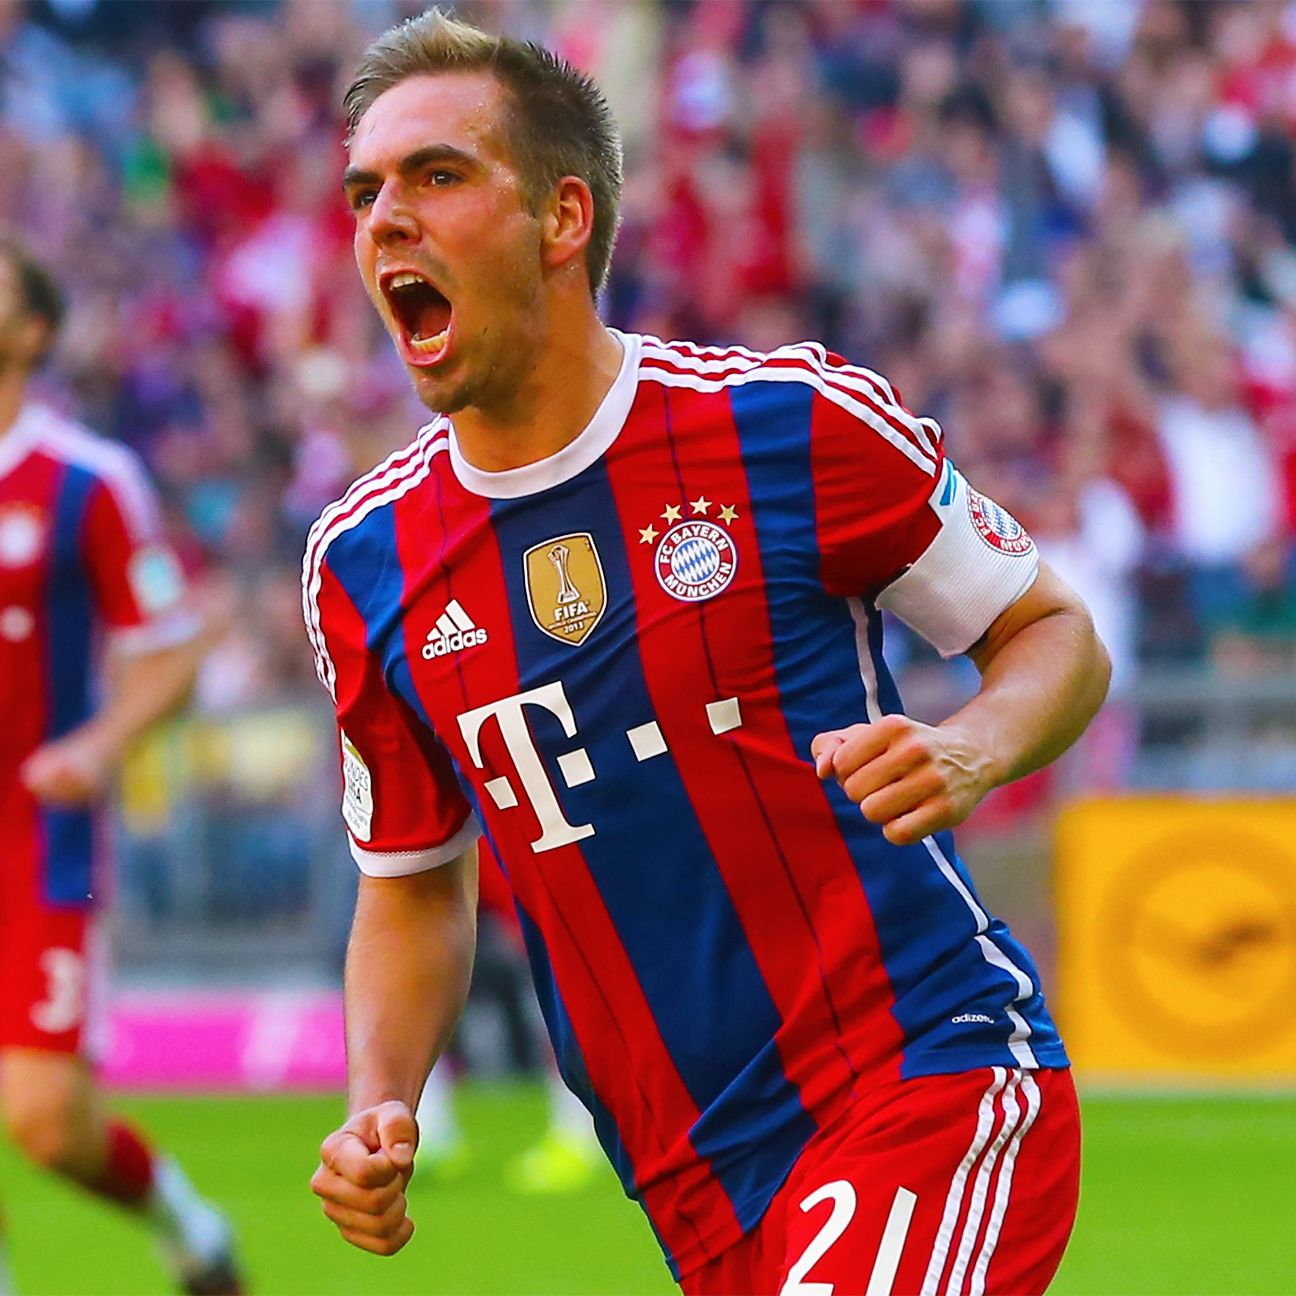 It is no coincidence that Bayern are playing some of their best football with Philipp Lahm in full form.